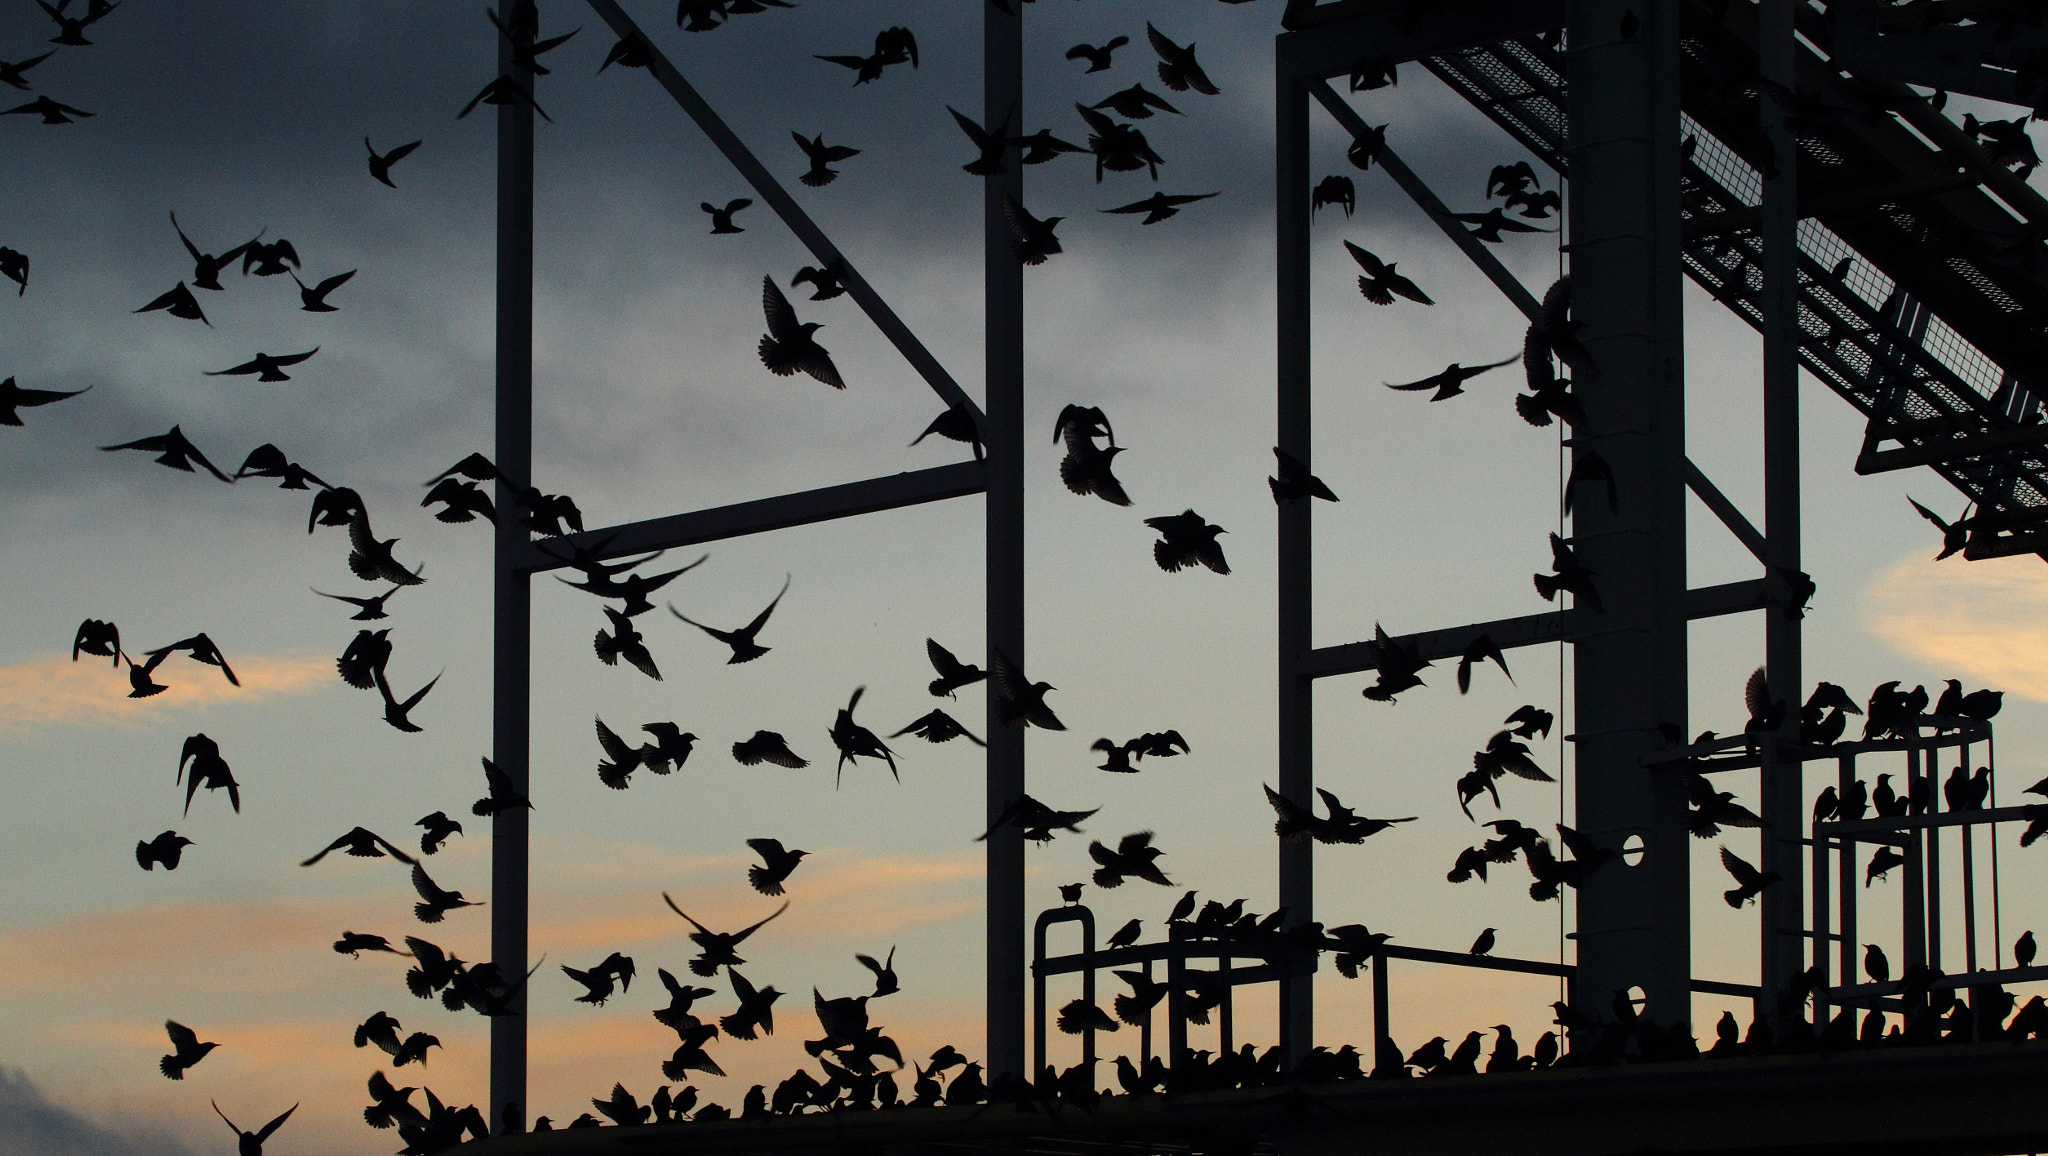 Photograph roost in silhouette by Lee Crawley  on 500px